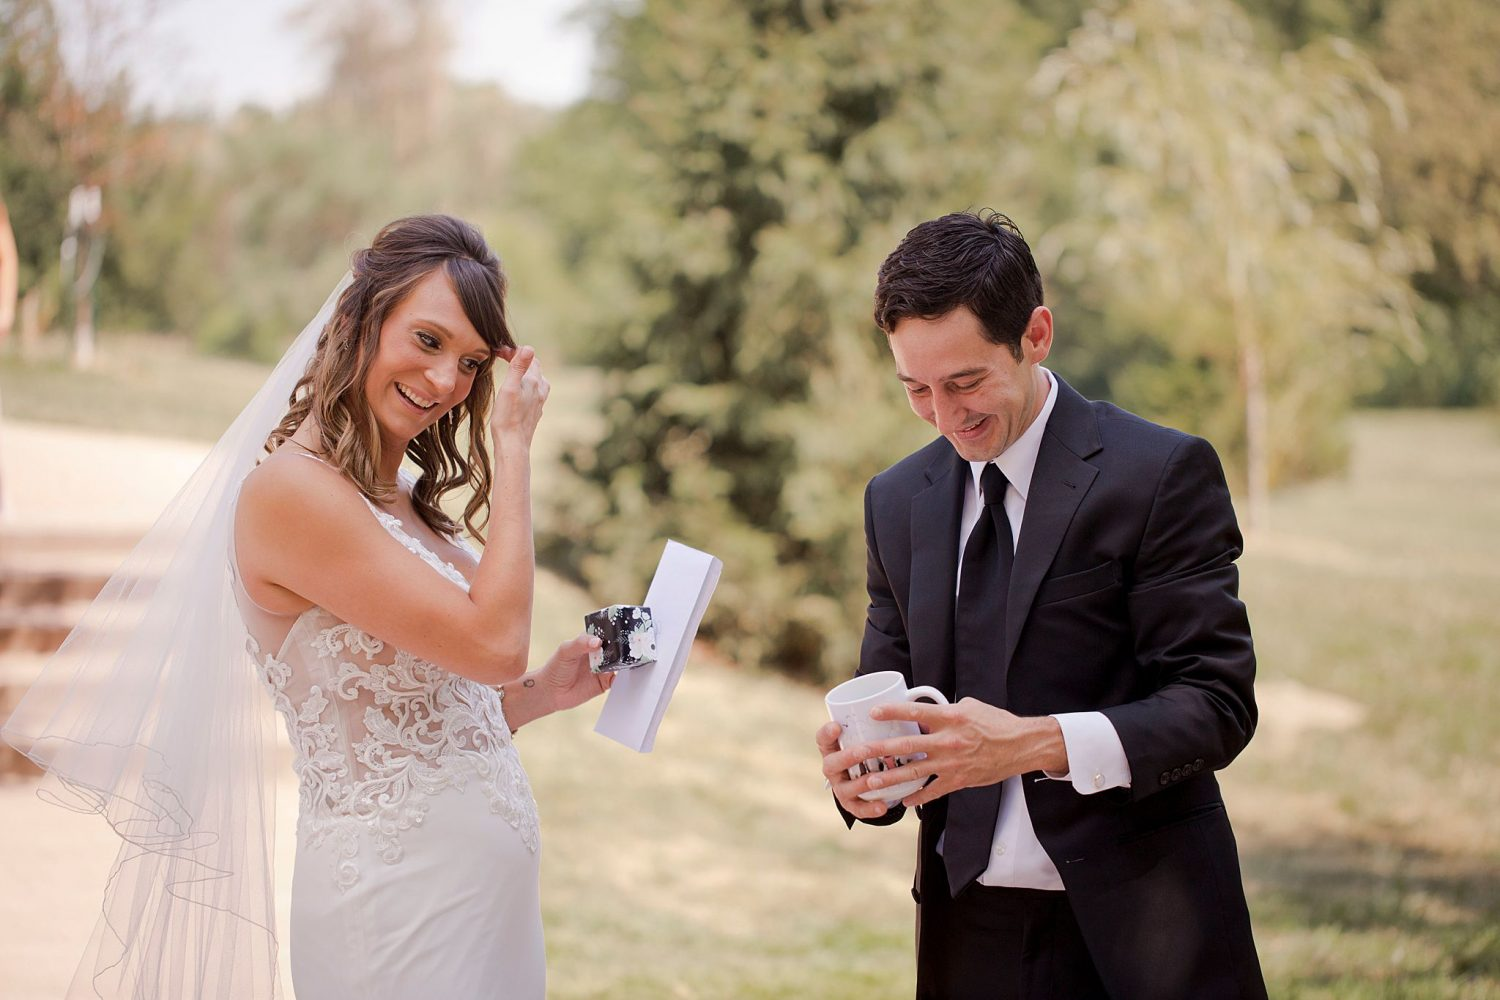 A bride and groom exchange gifts on their wedding day outside at Rapid Creek Cidery.